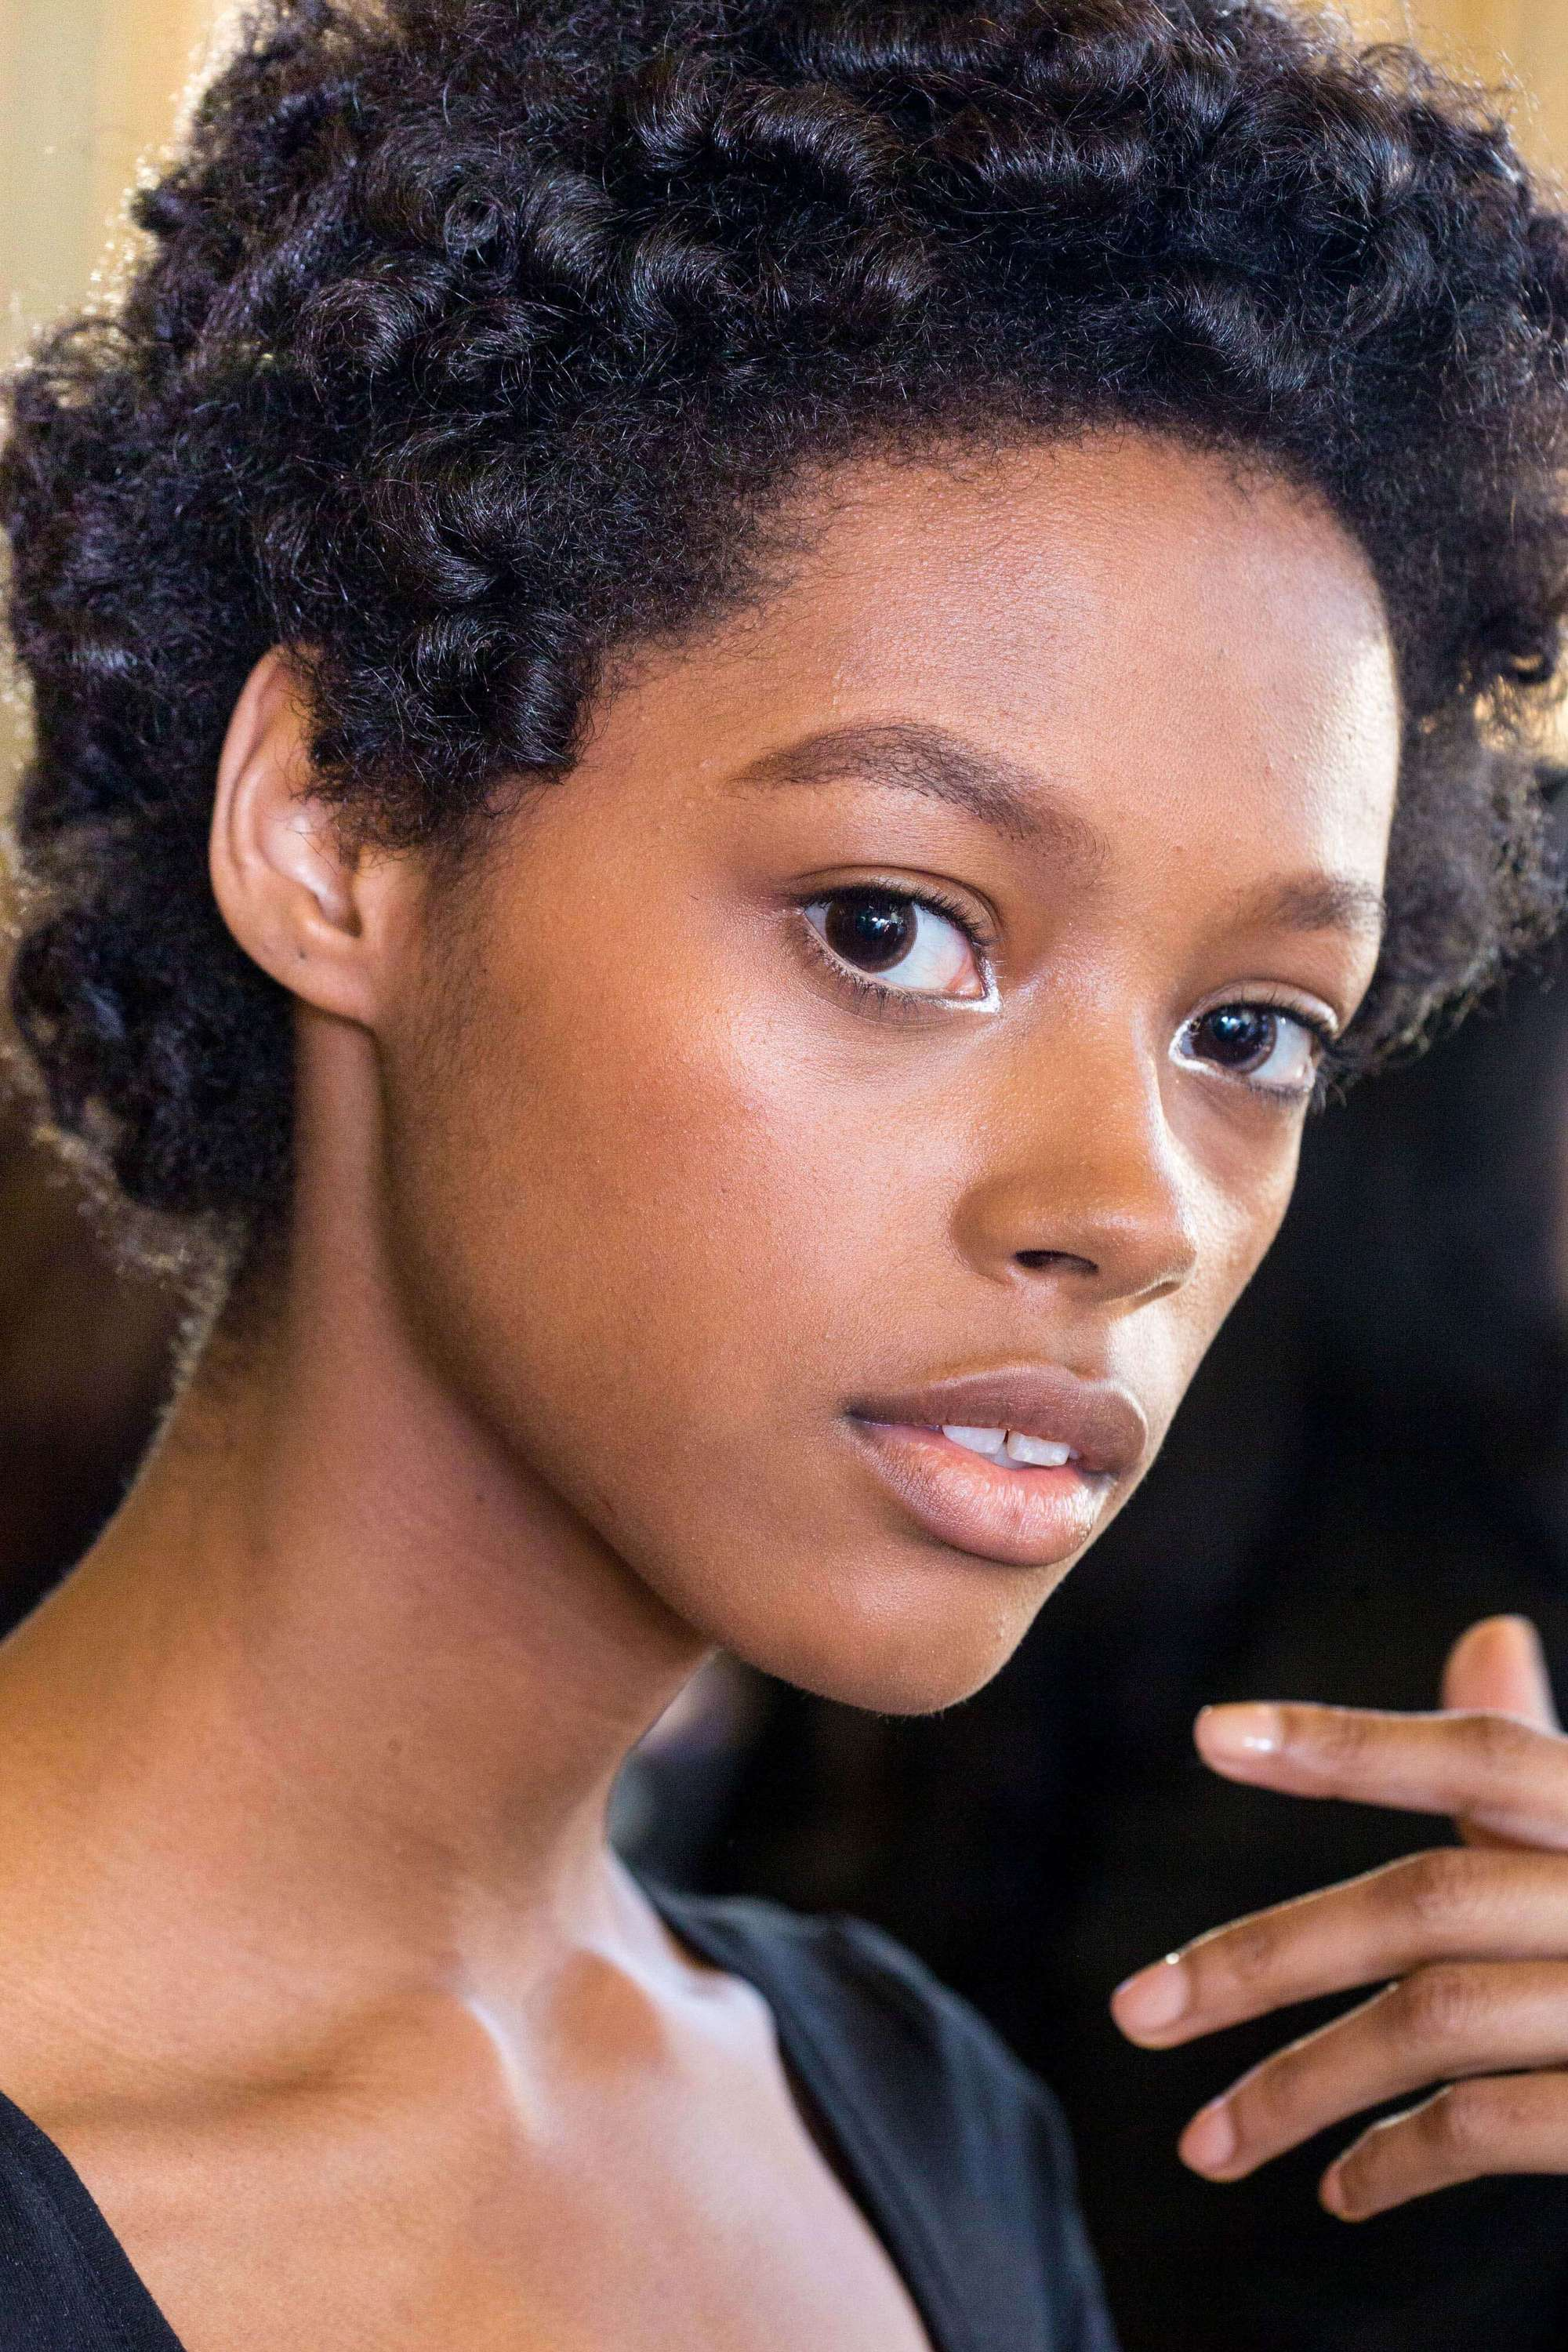 Easy Natural Hairstyles: 11 Hairstyles To Try